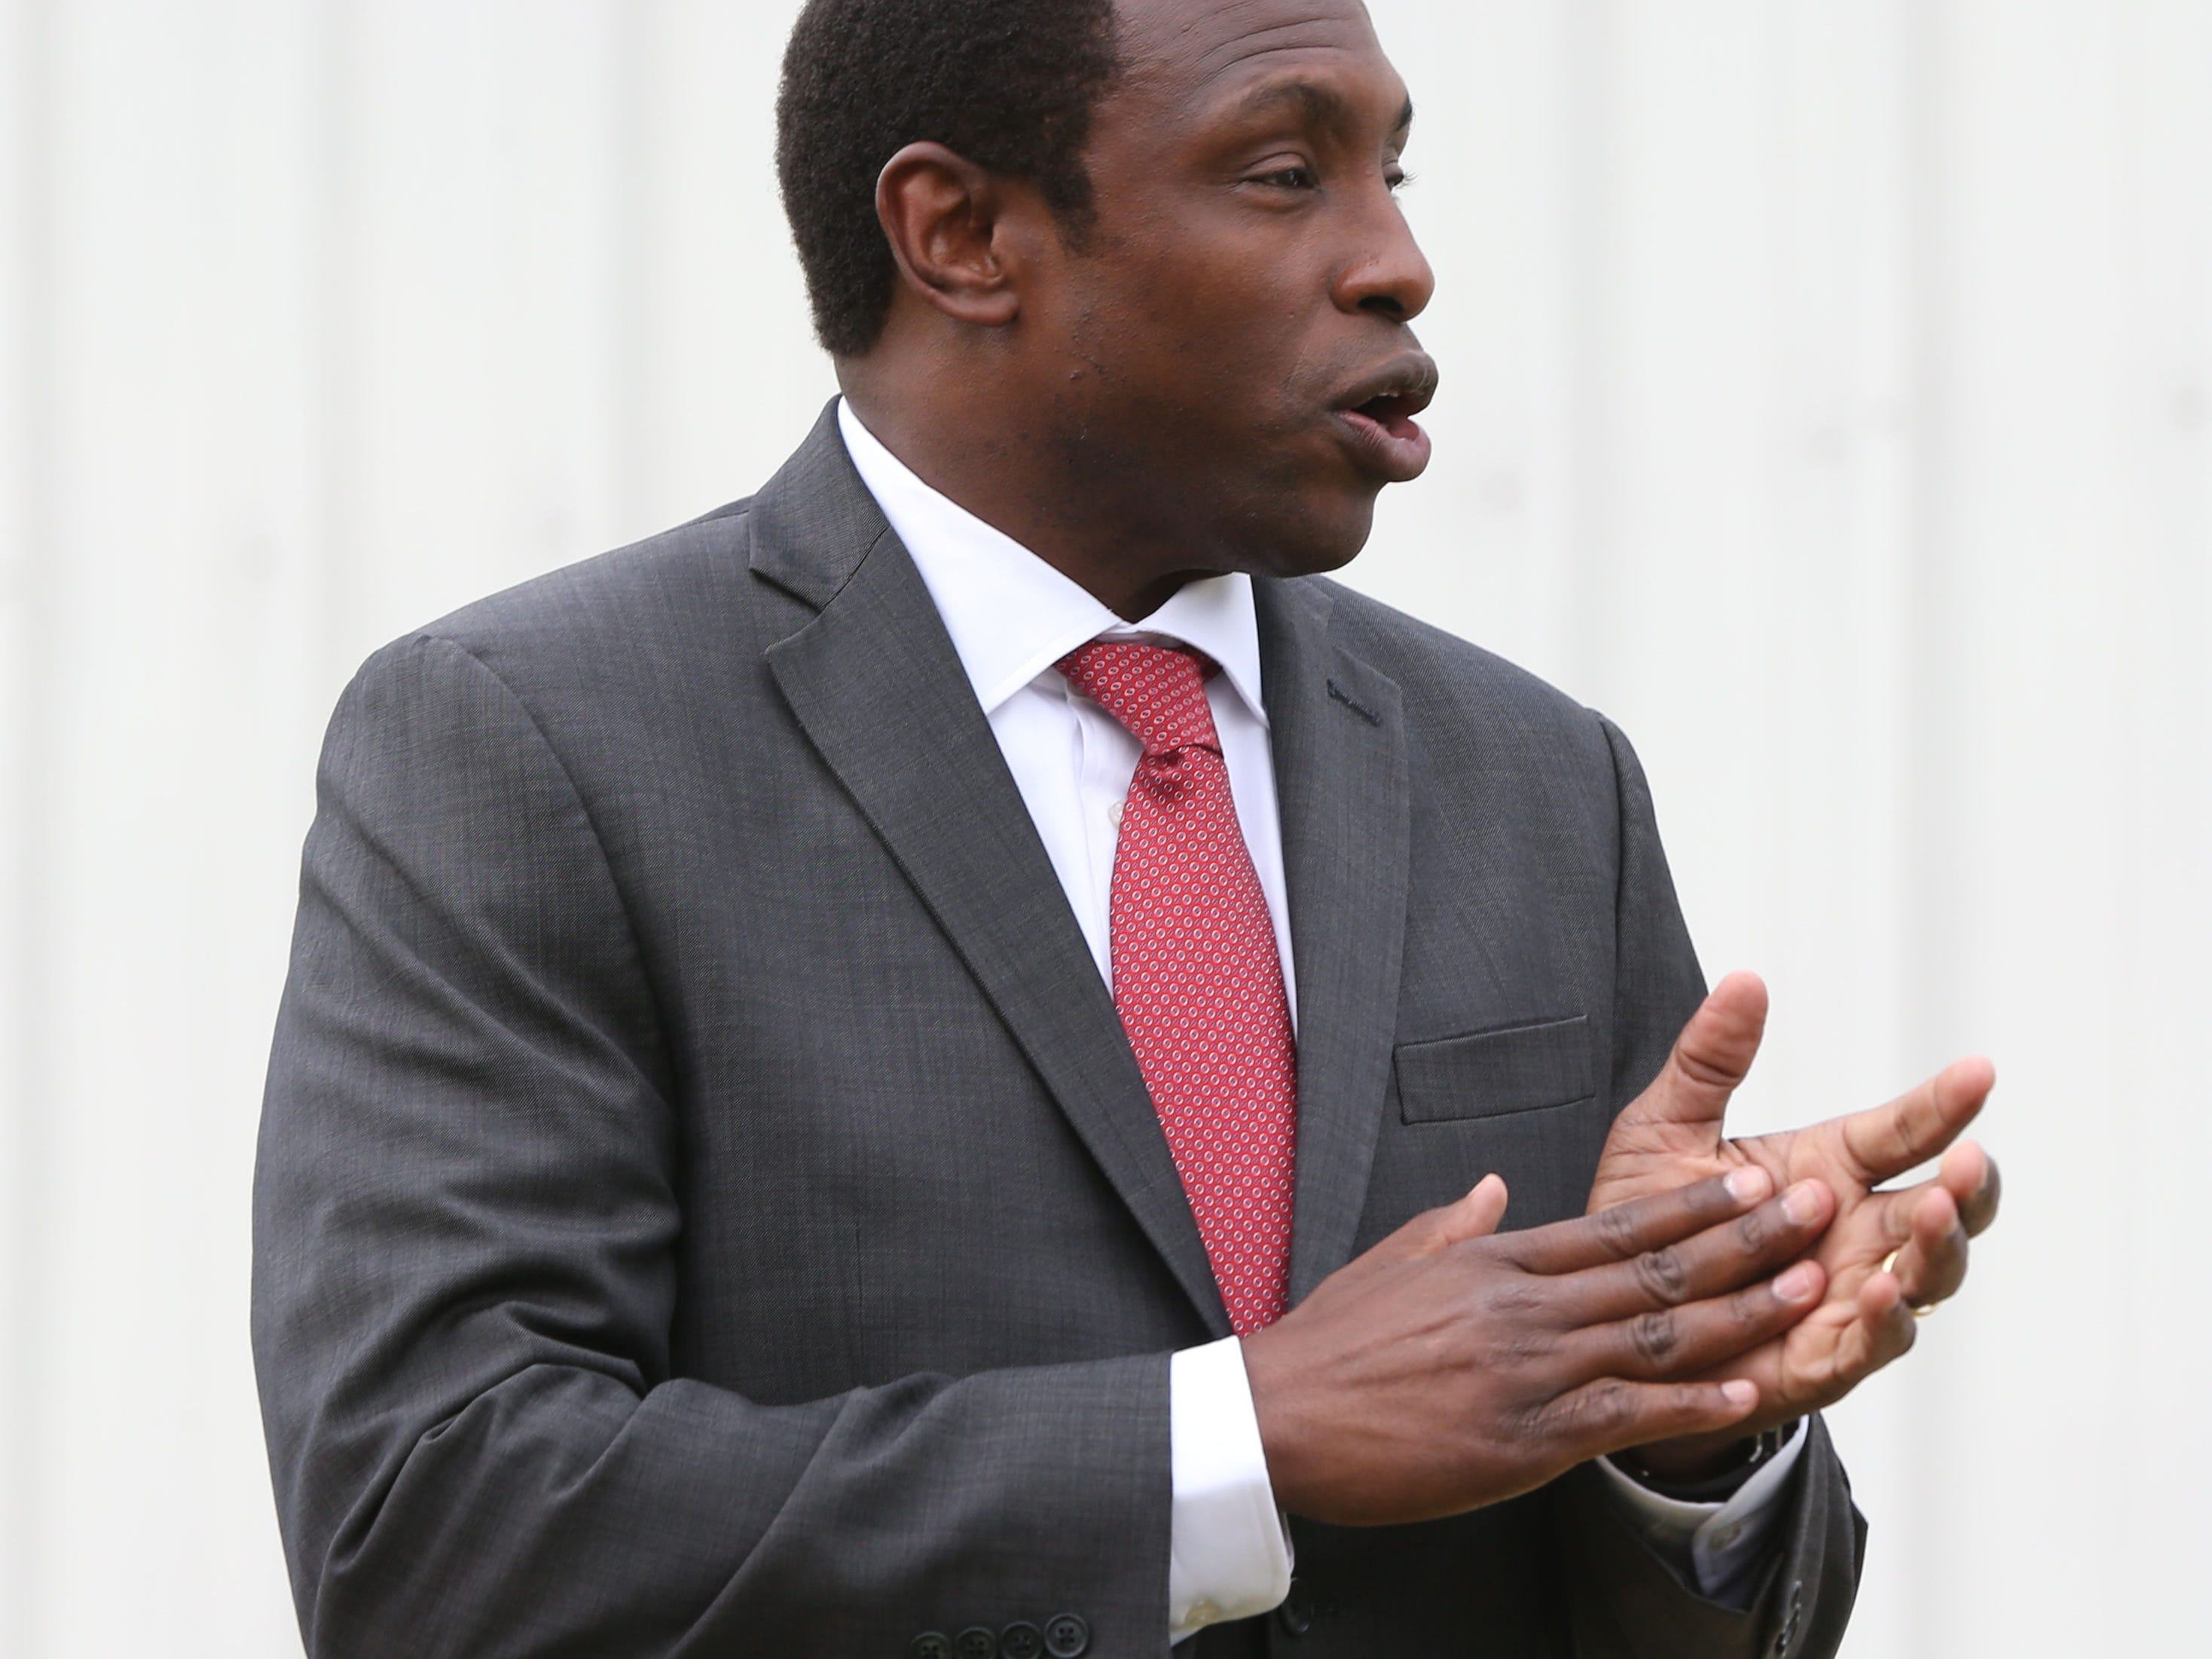 Avery Johnson arrives in Alabama